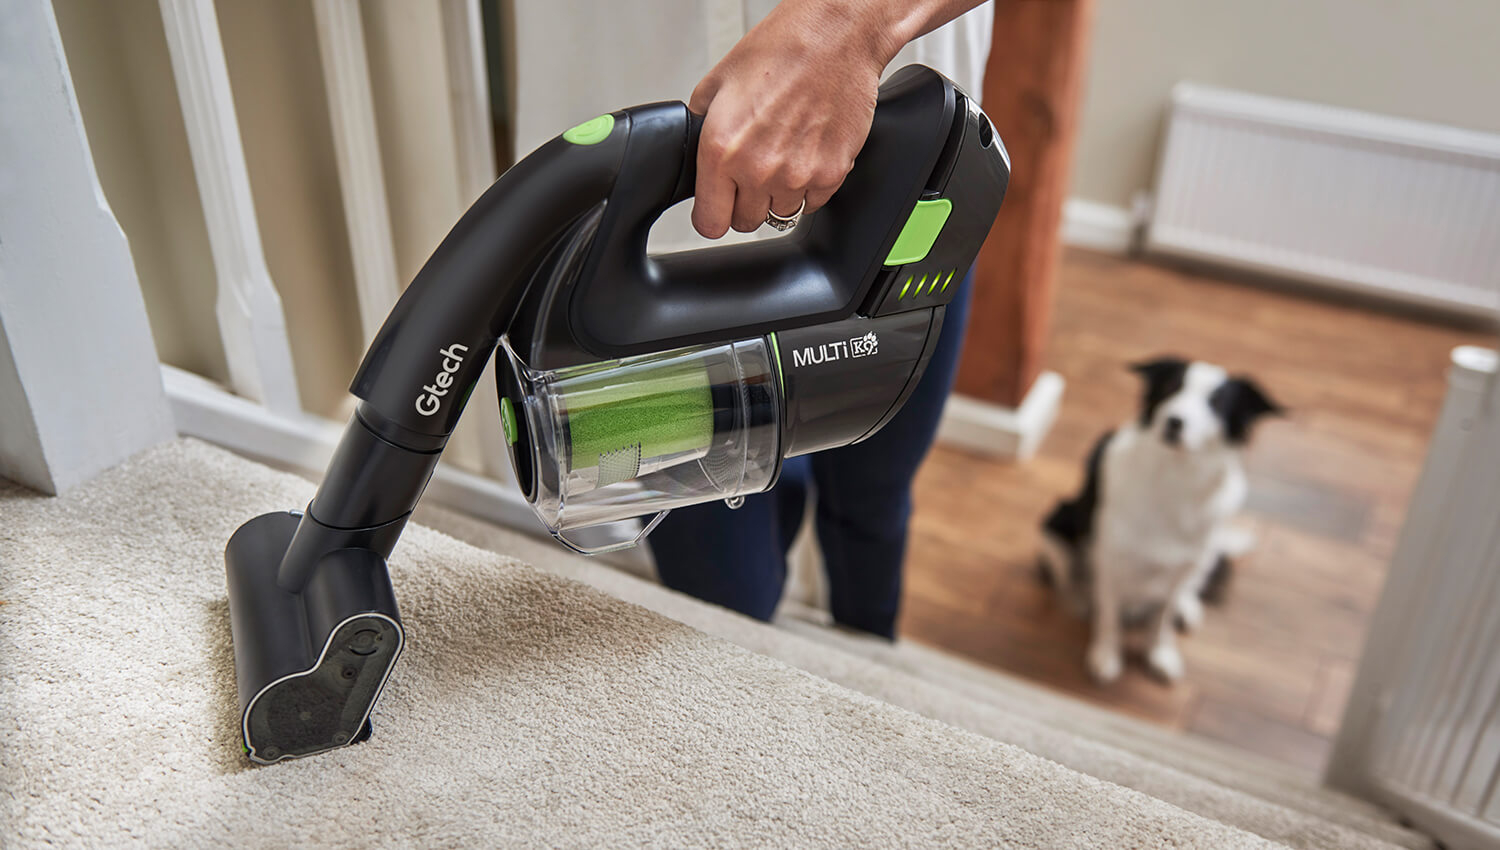 Gtech Multi K9 | Hand held Pet Vacuum Cleaner Gtech